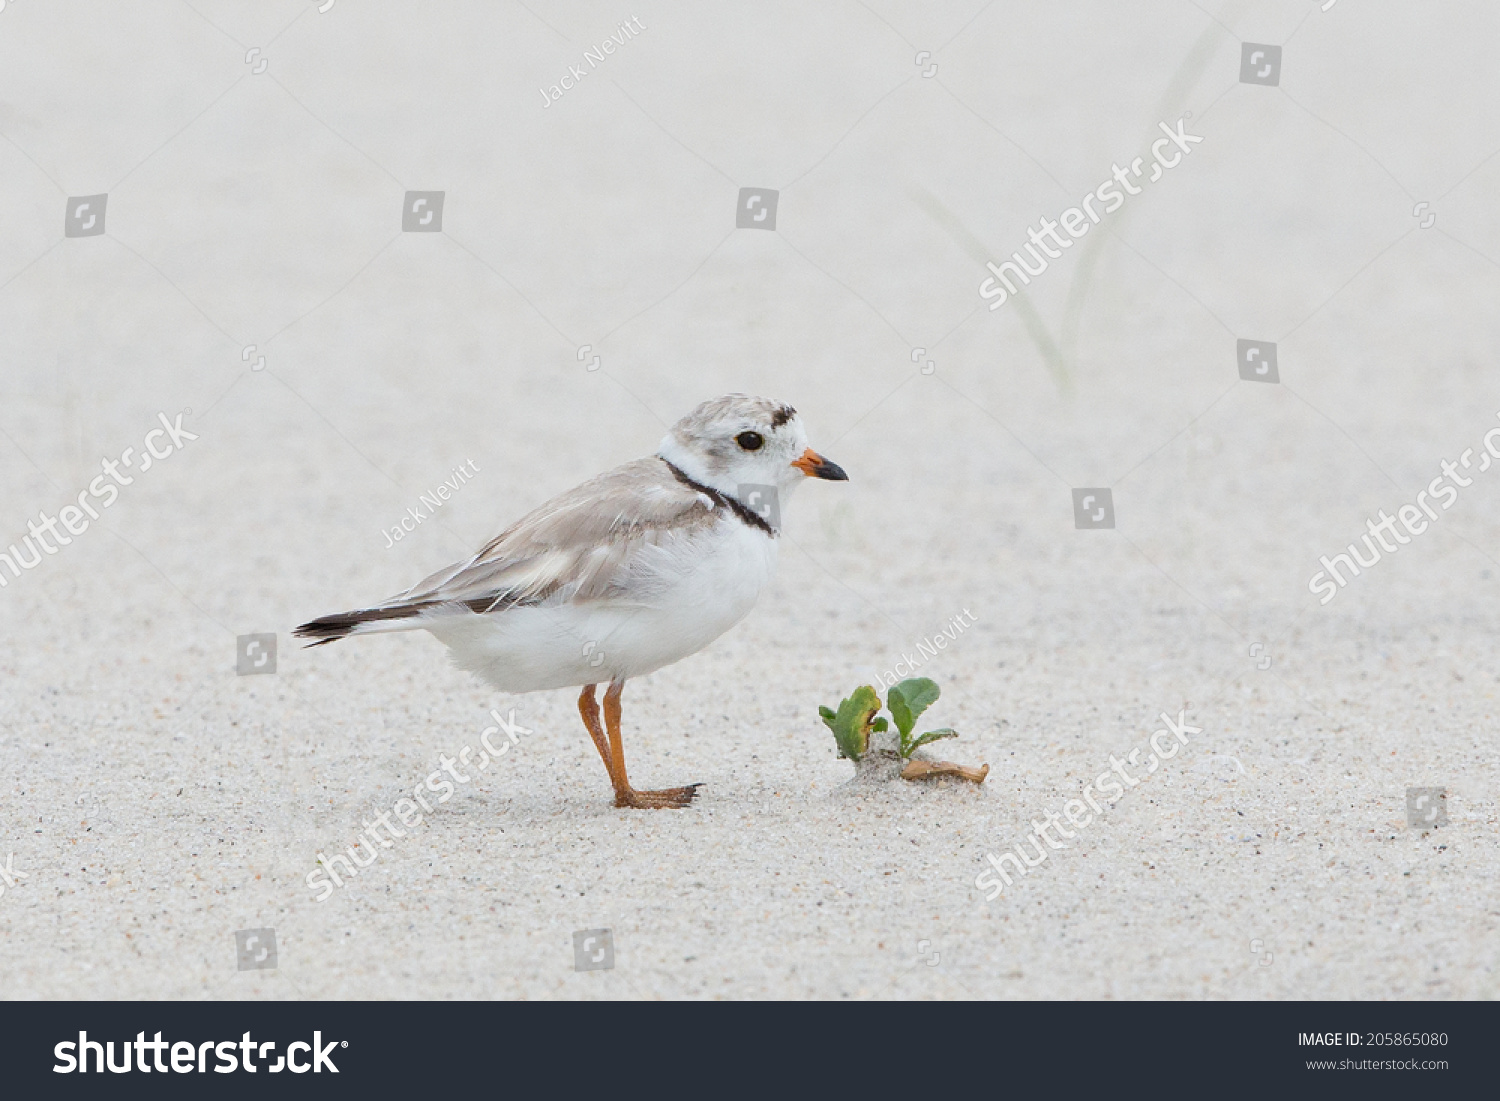 Baby piping plover - photo#25